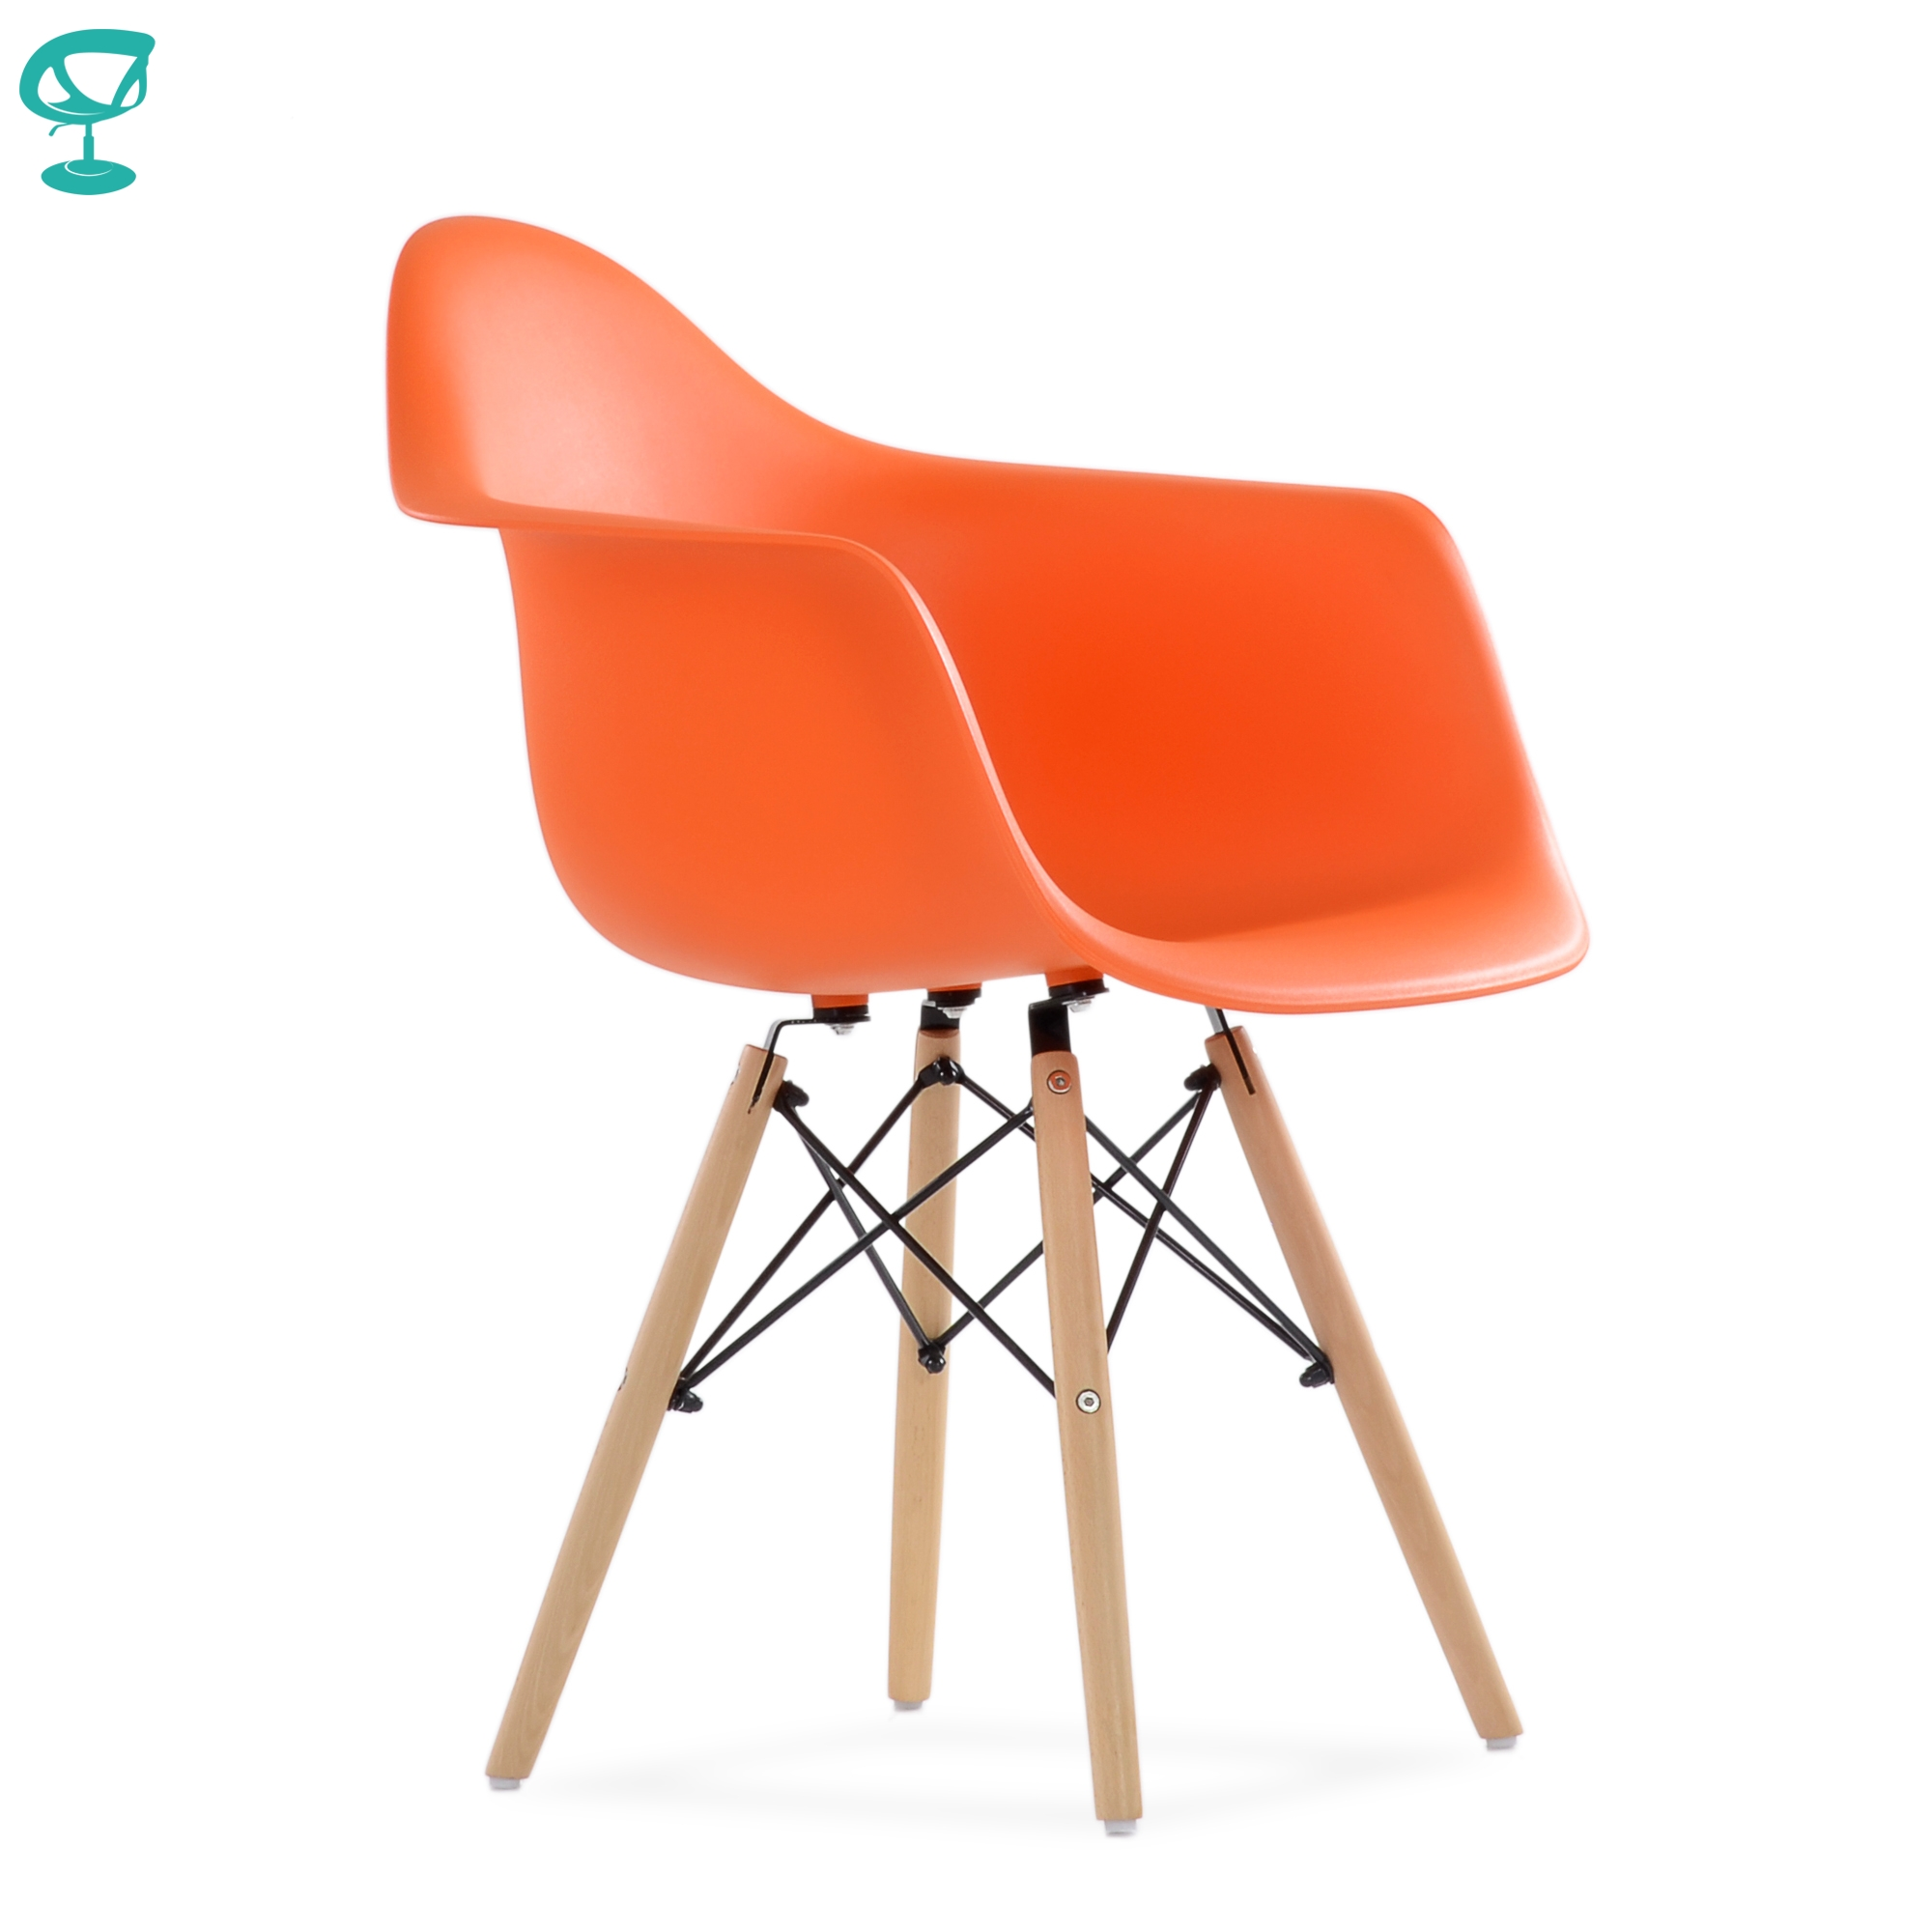 95752 Barneo N-14 Plastic Kitchen Breakfast Interior Stool Bar Chair Kitchen Furniture Orange Free Shipping In Russia